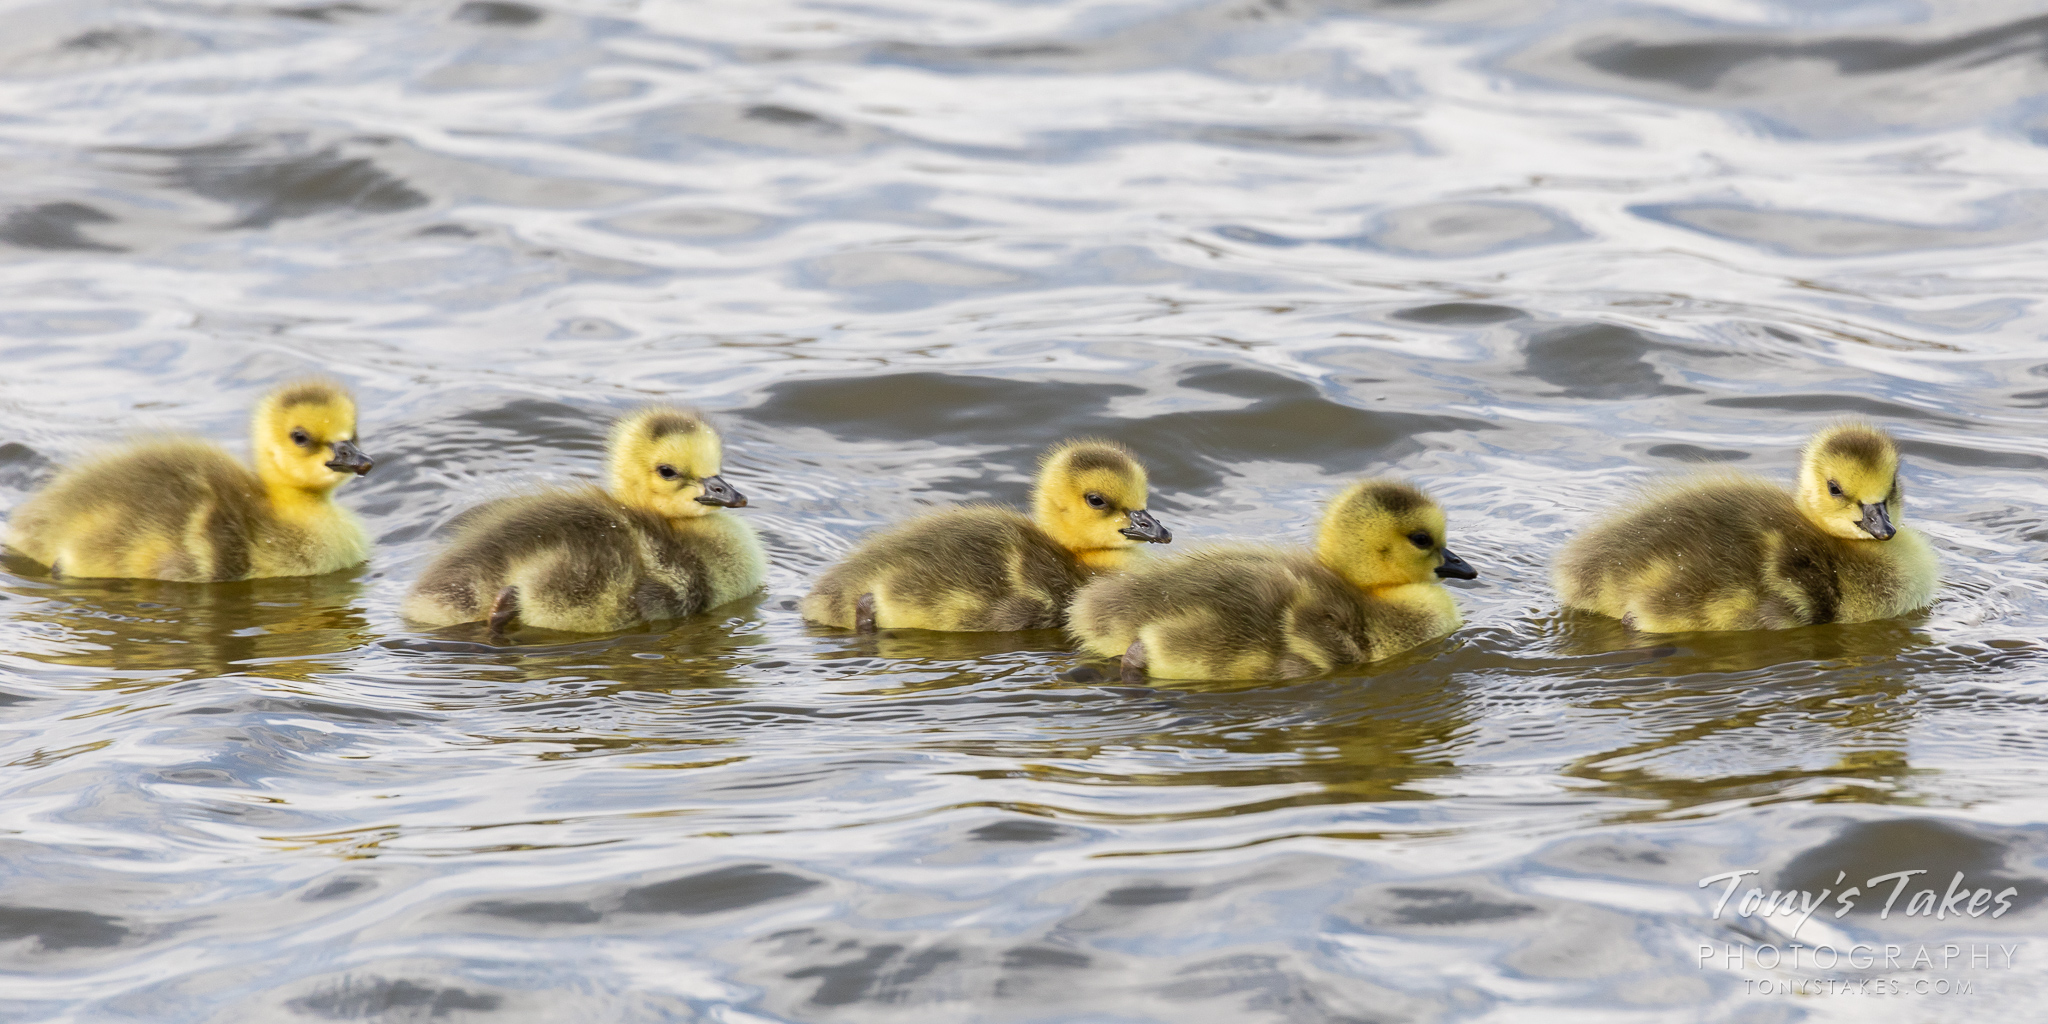 Newborn goslings out for a swim